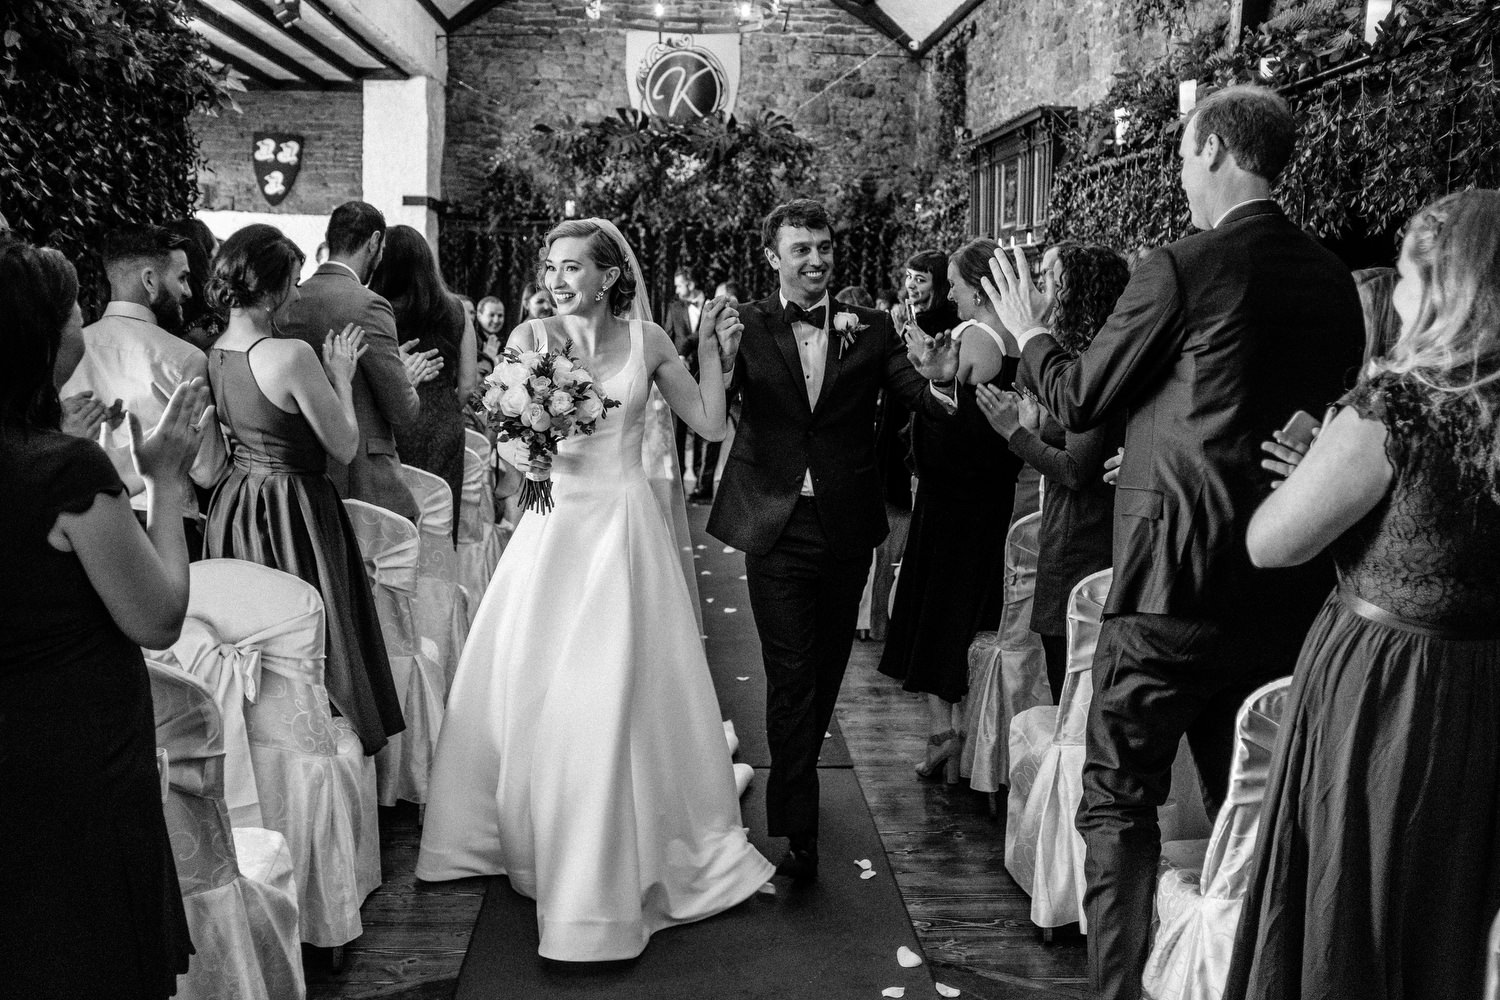 000000000000000000000120_bride_style_vintage_photography_david_mcclelland_ireland_castle_hollywood_kinnity_wedding_photographer_fujifilm